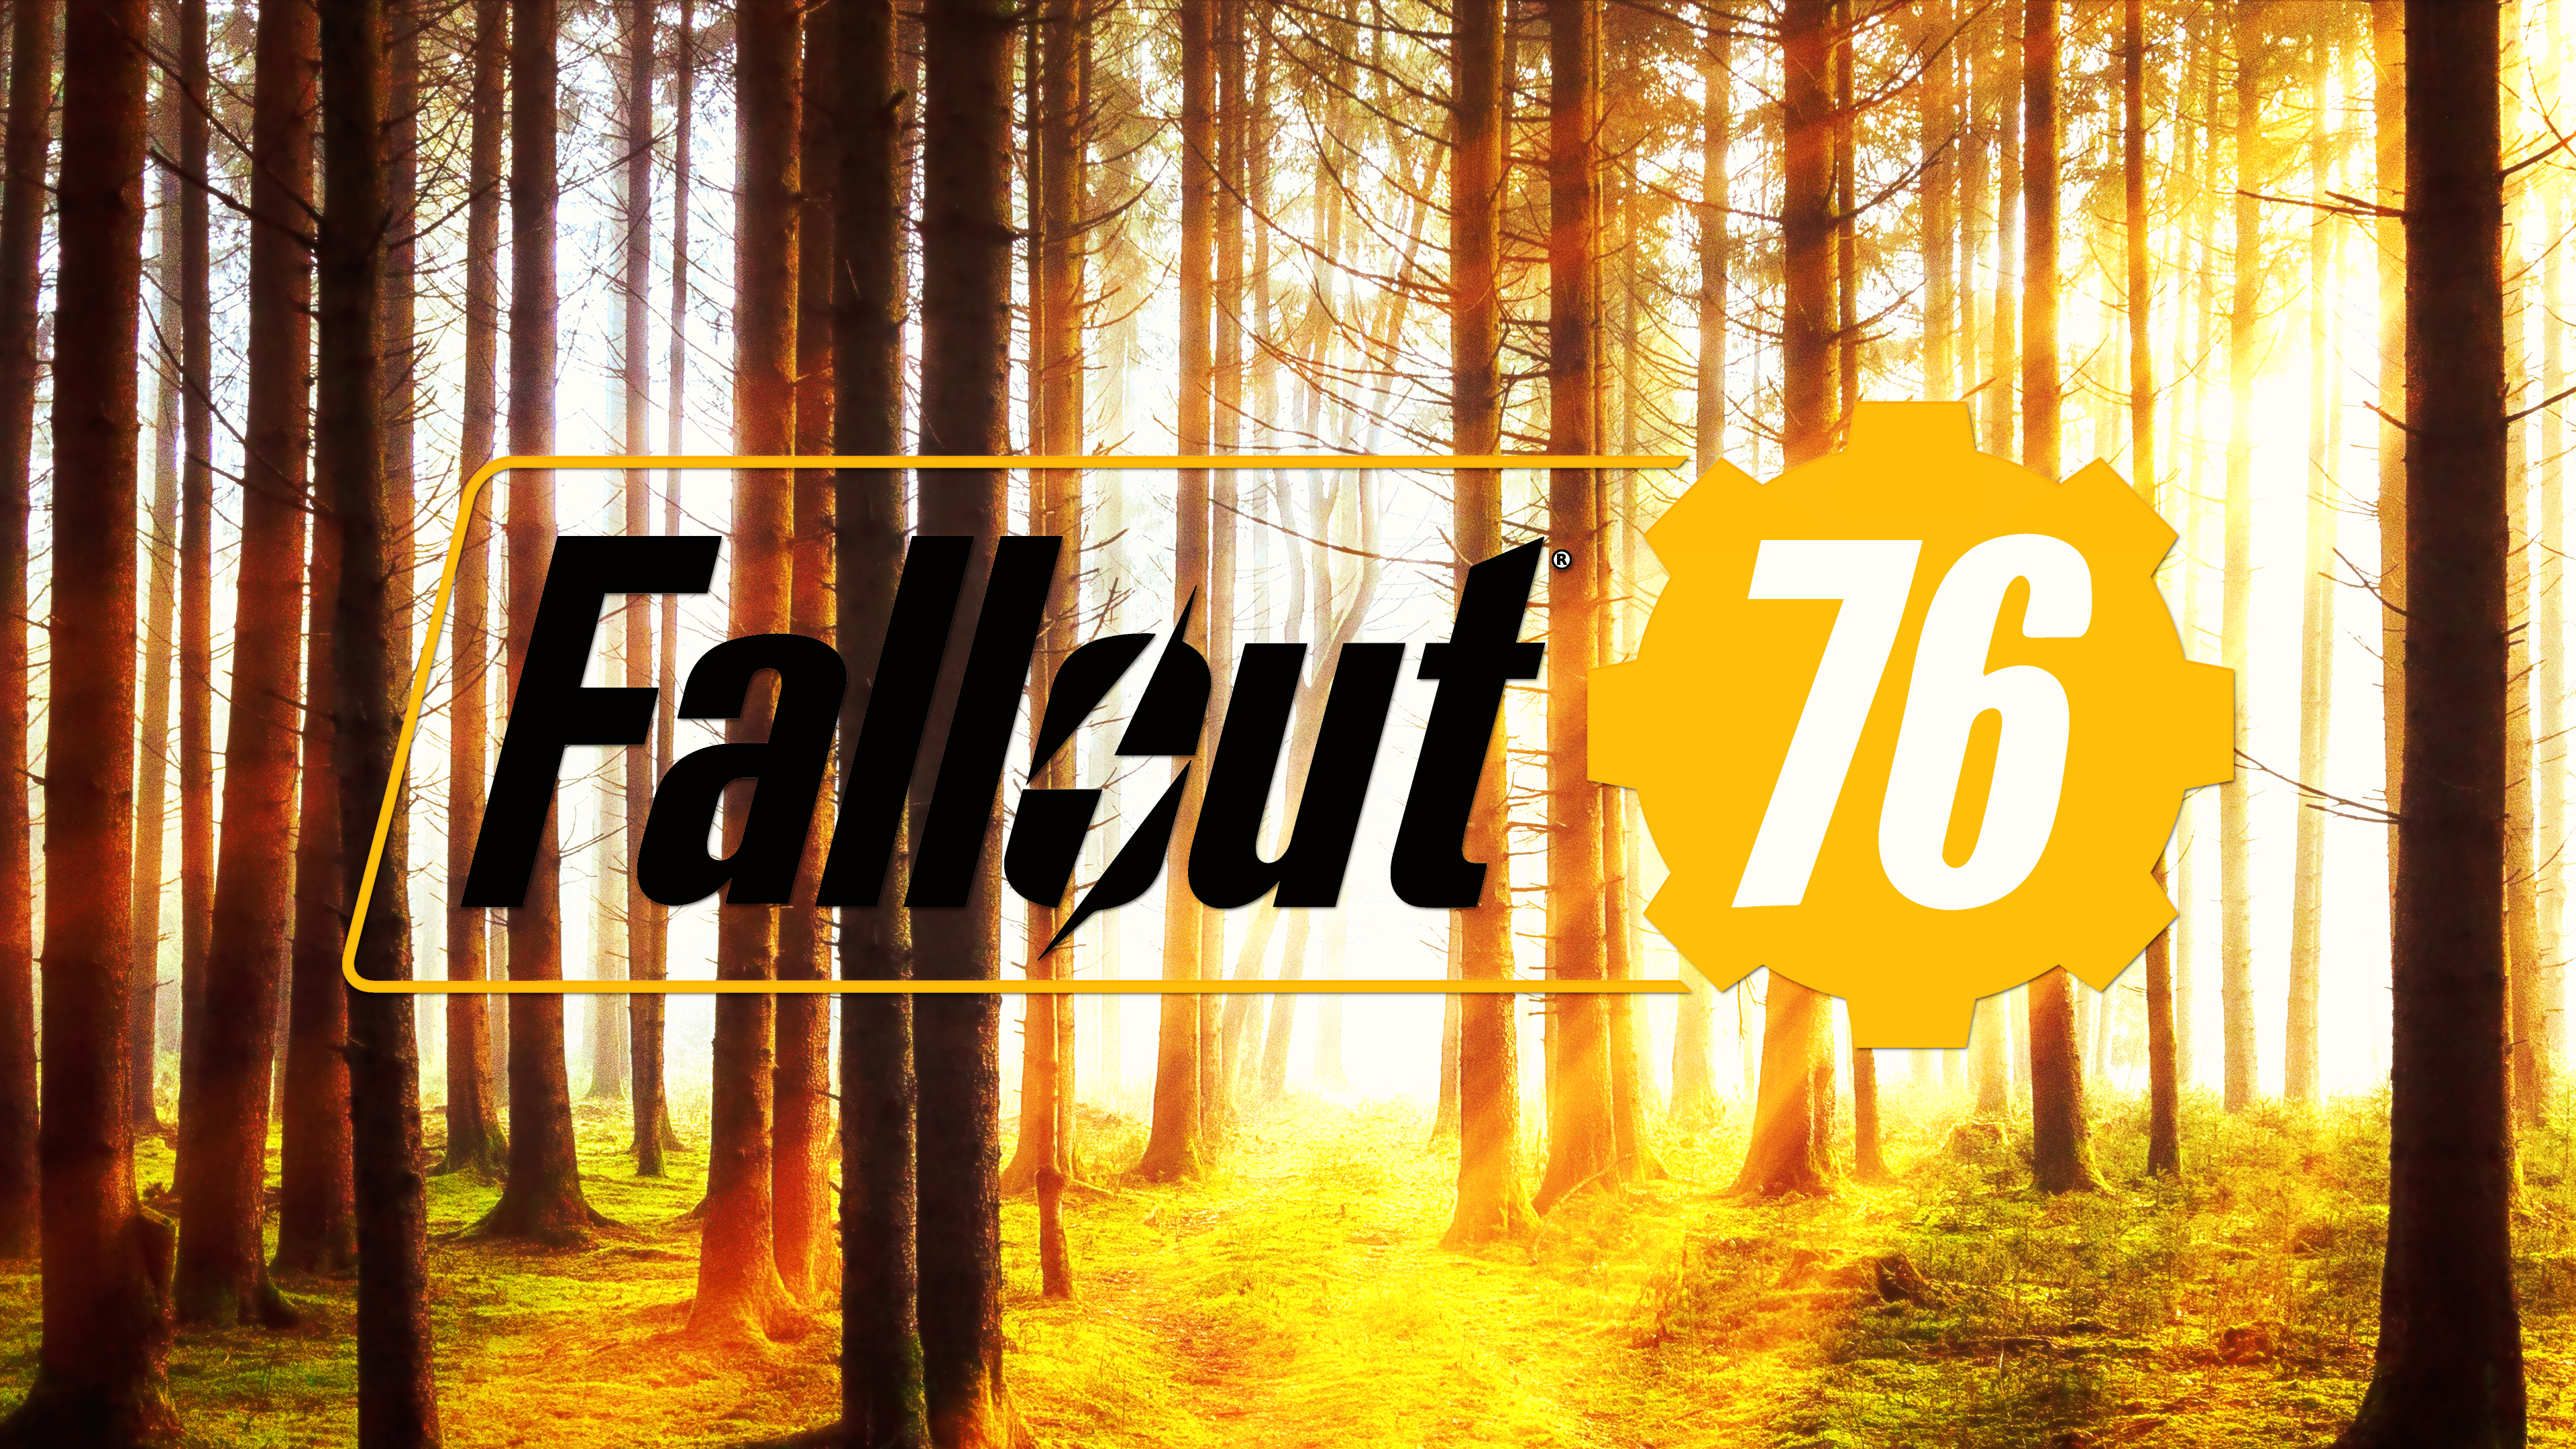 4k Fallout 76 Wallpaper Hd